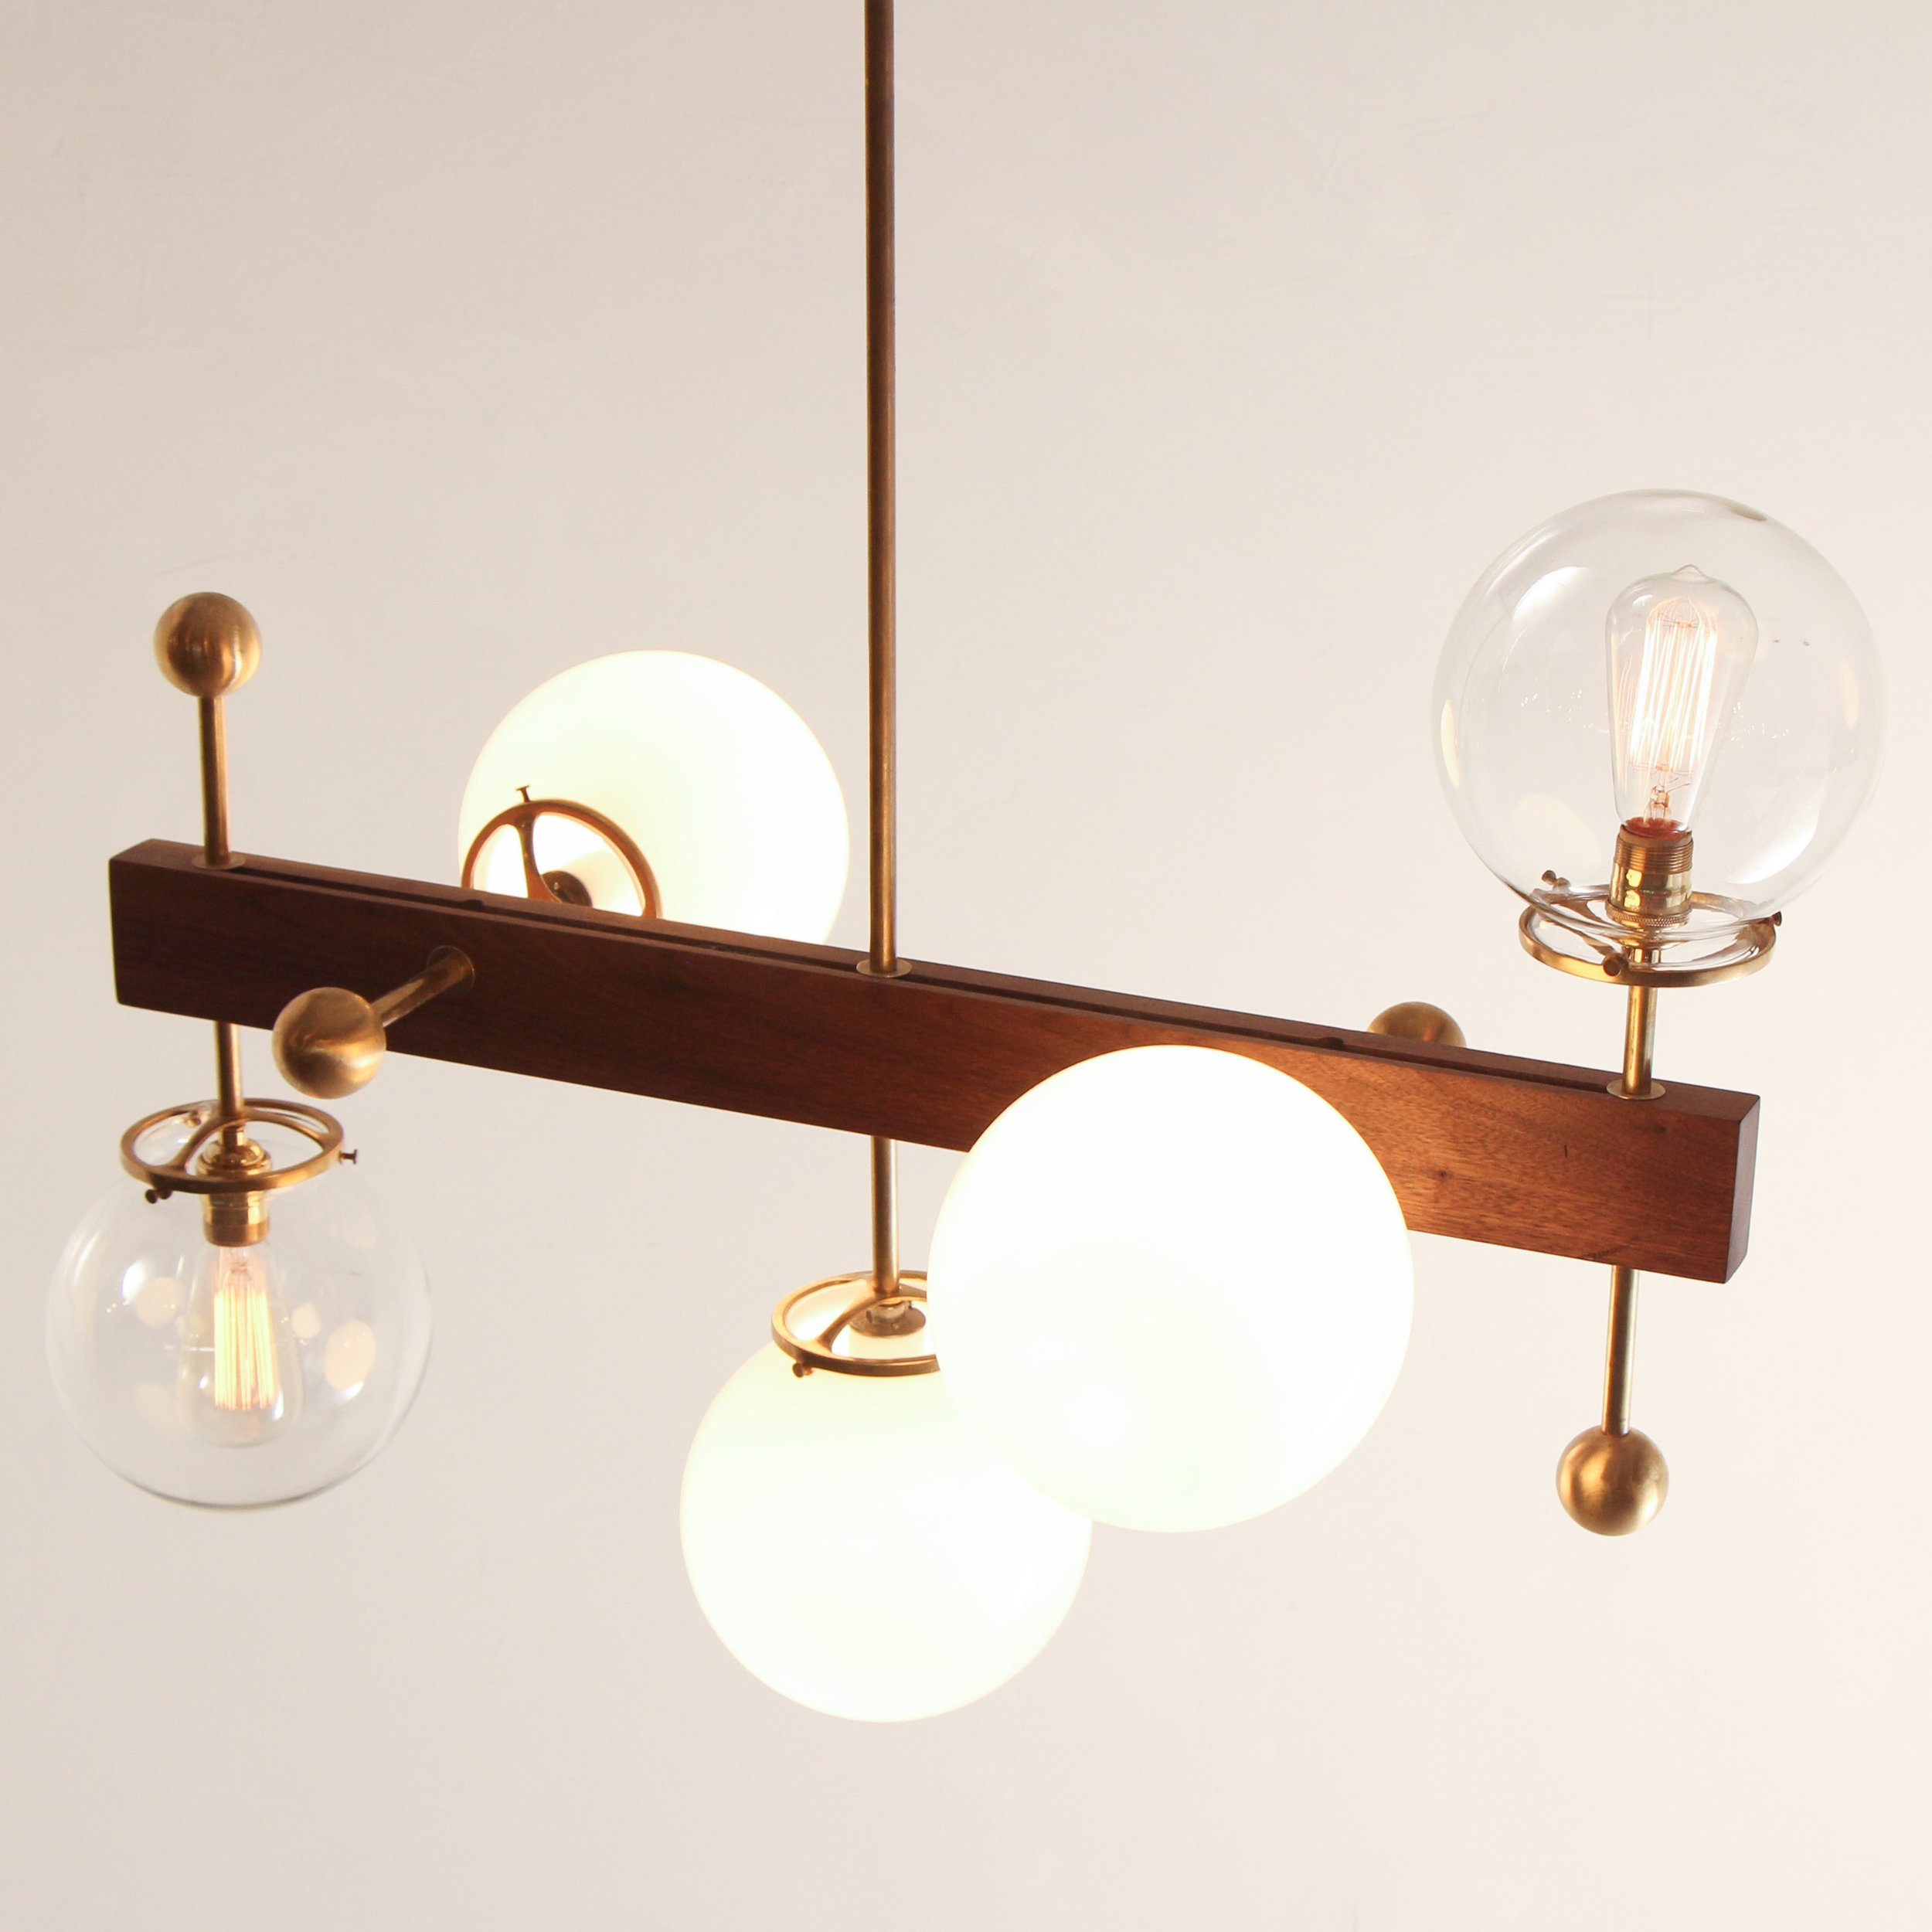 5 Globe Walnut Brass Light